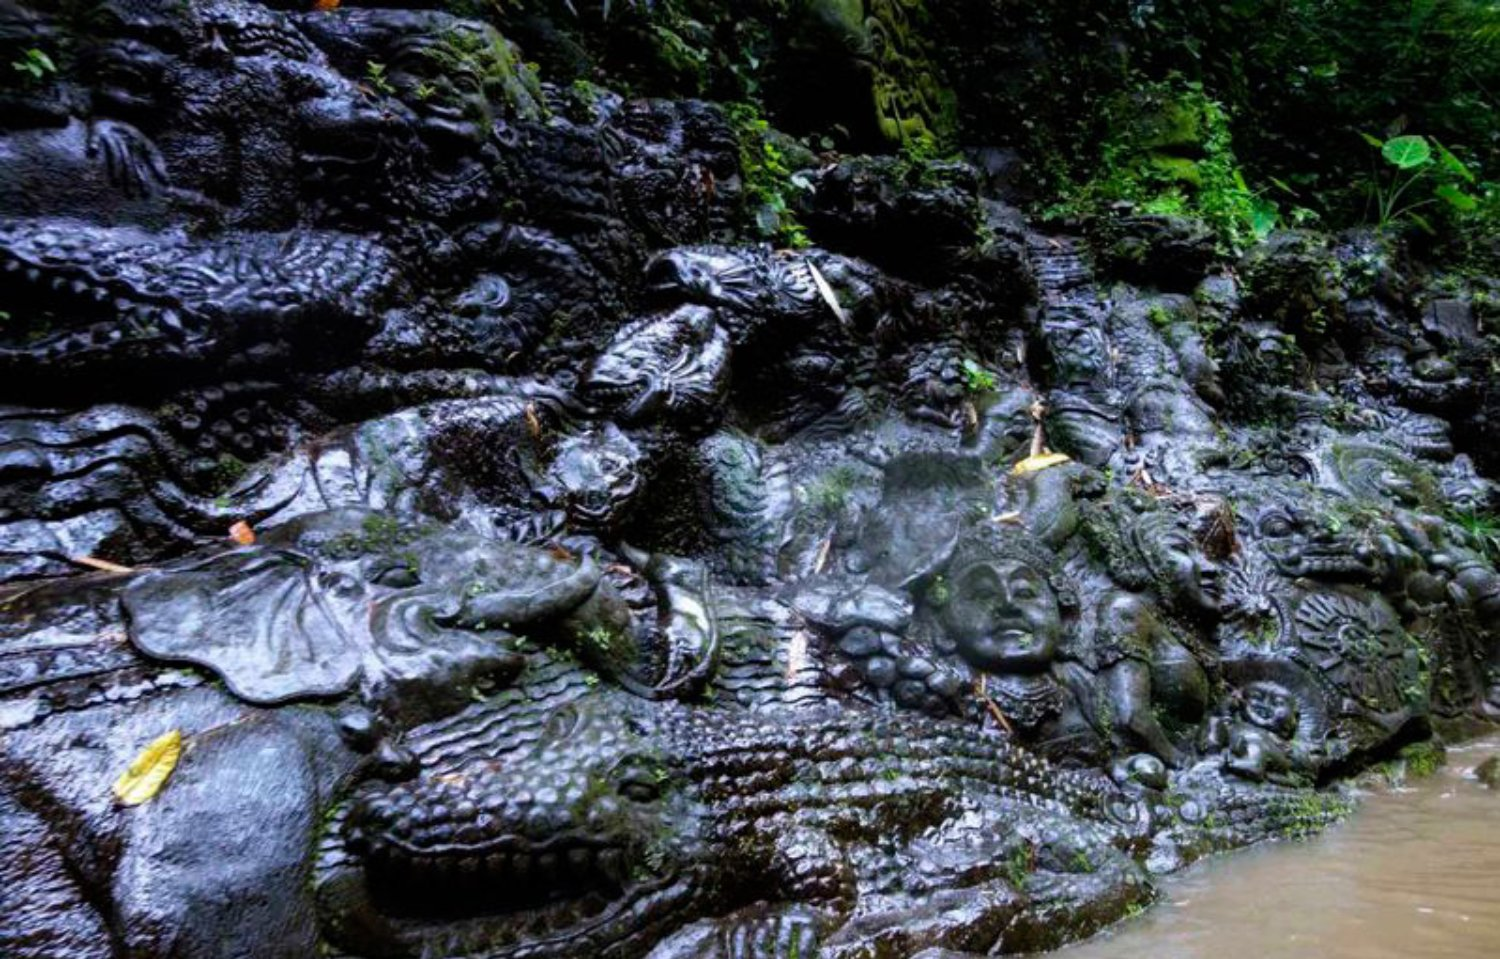 Stone Carving Art Ayung River